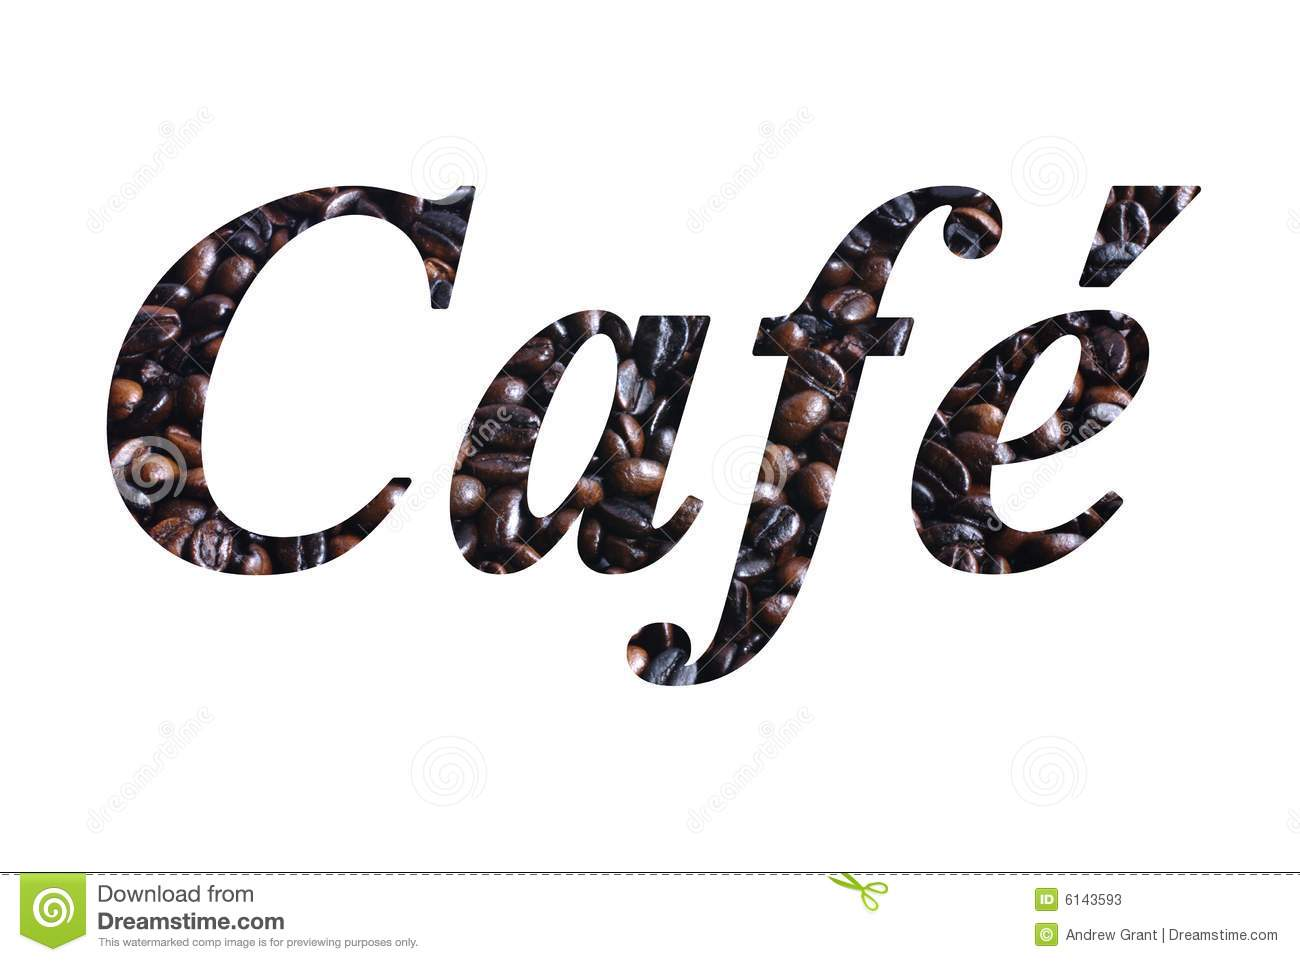 cafe script stock illustration illustration of roasted free clipart thumbs up emoji free clip art thumbs up emojis